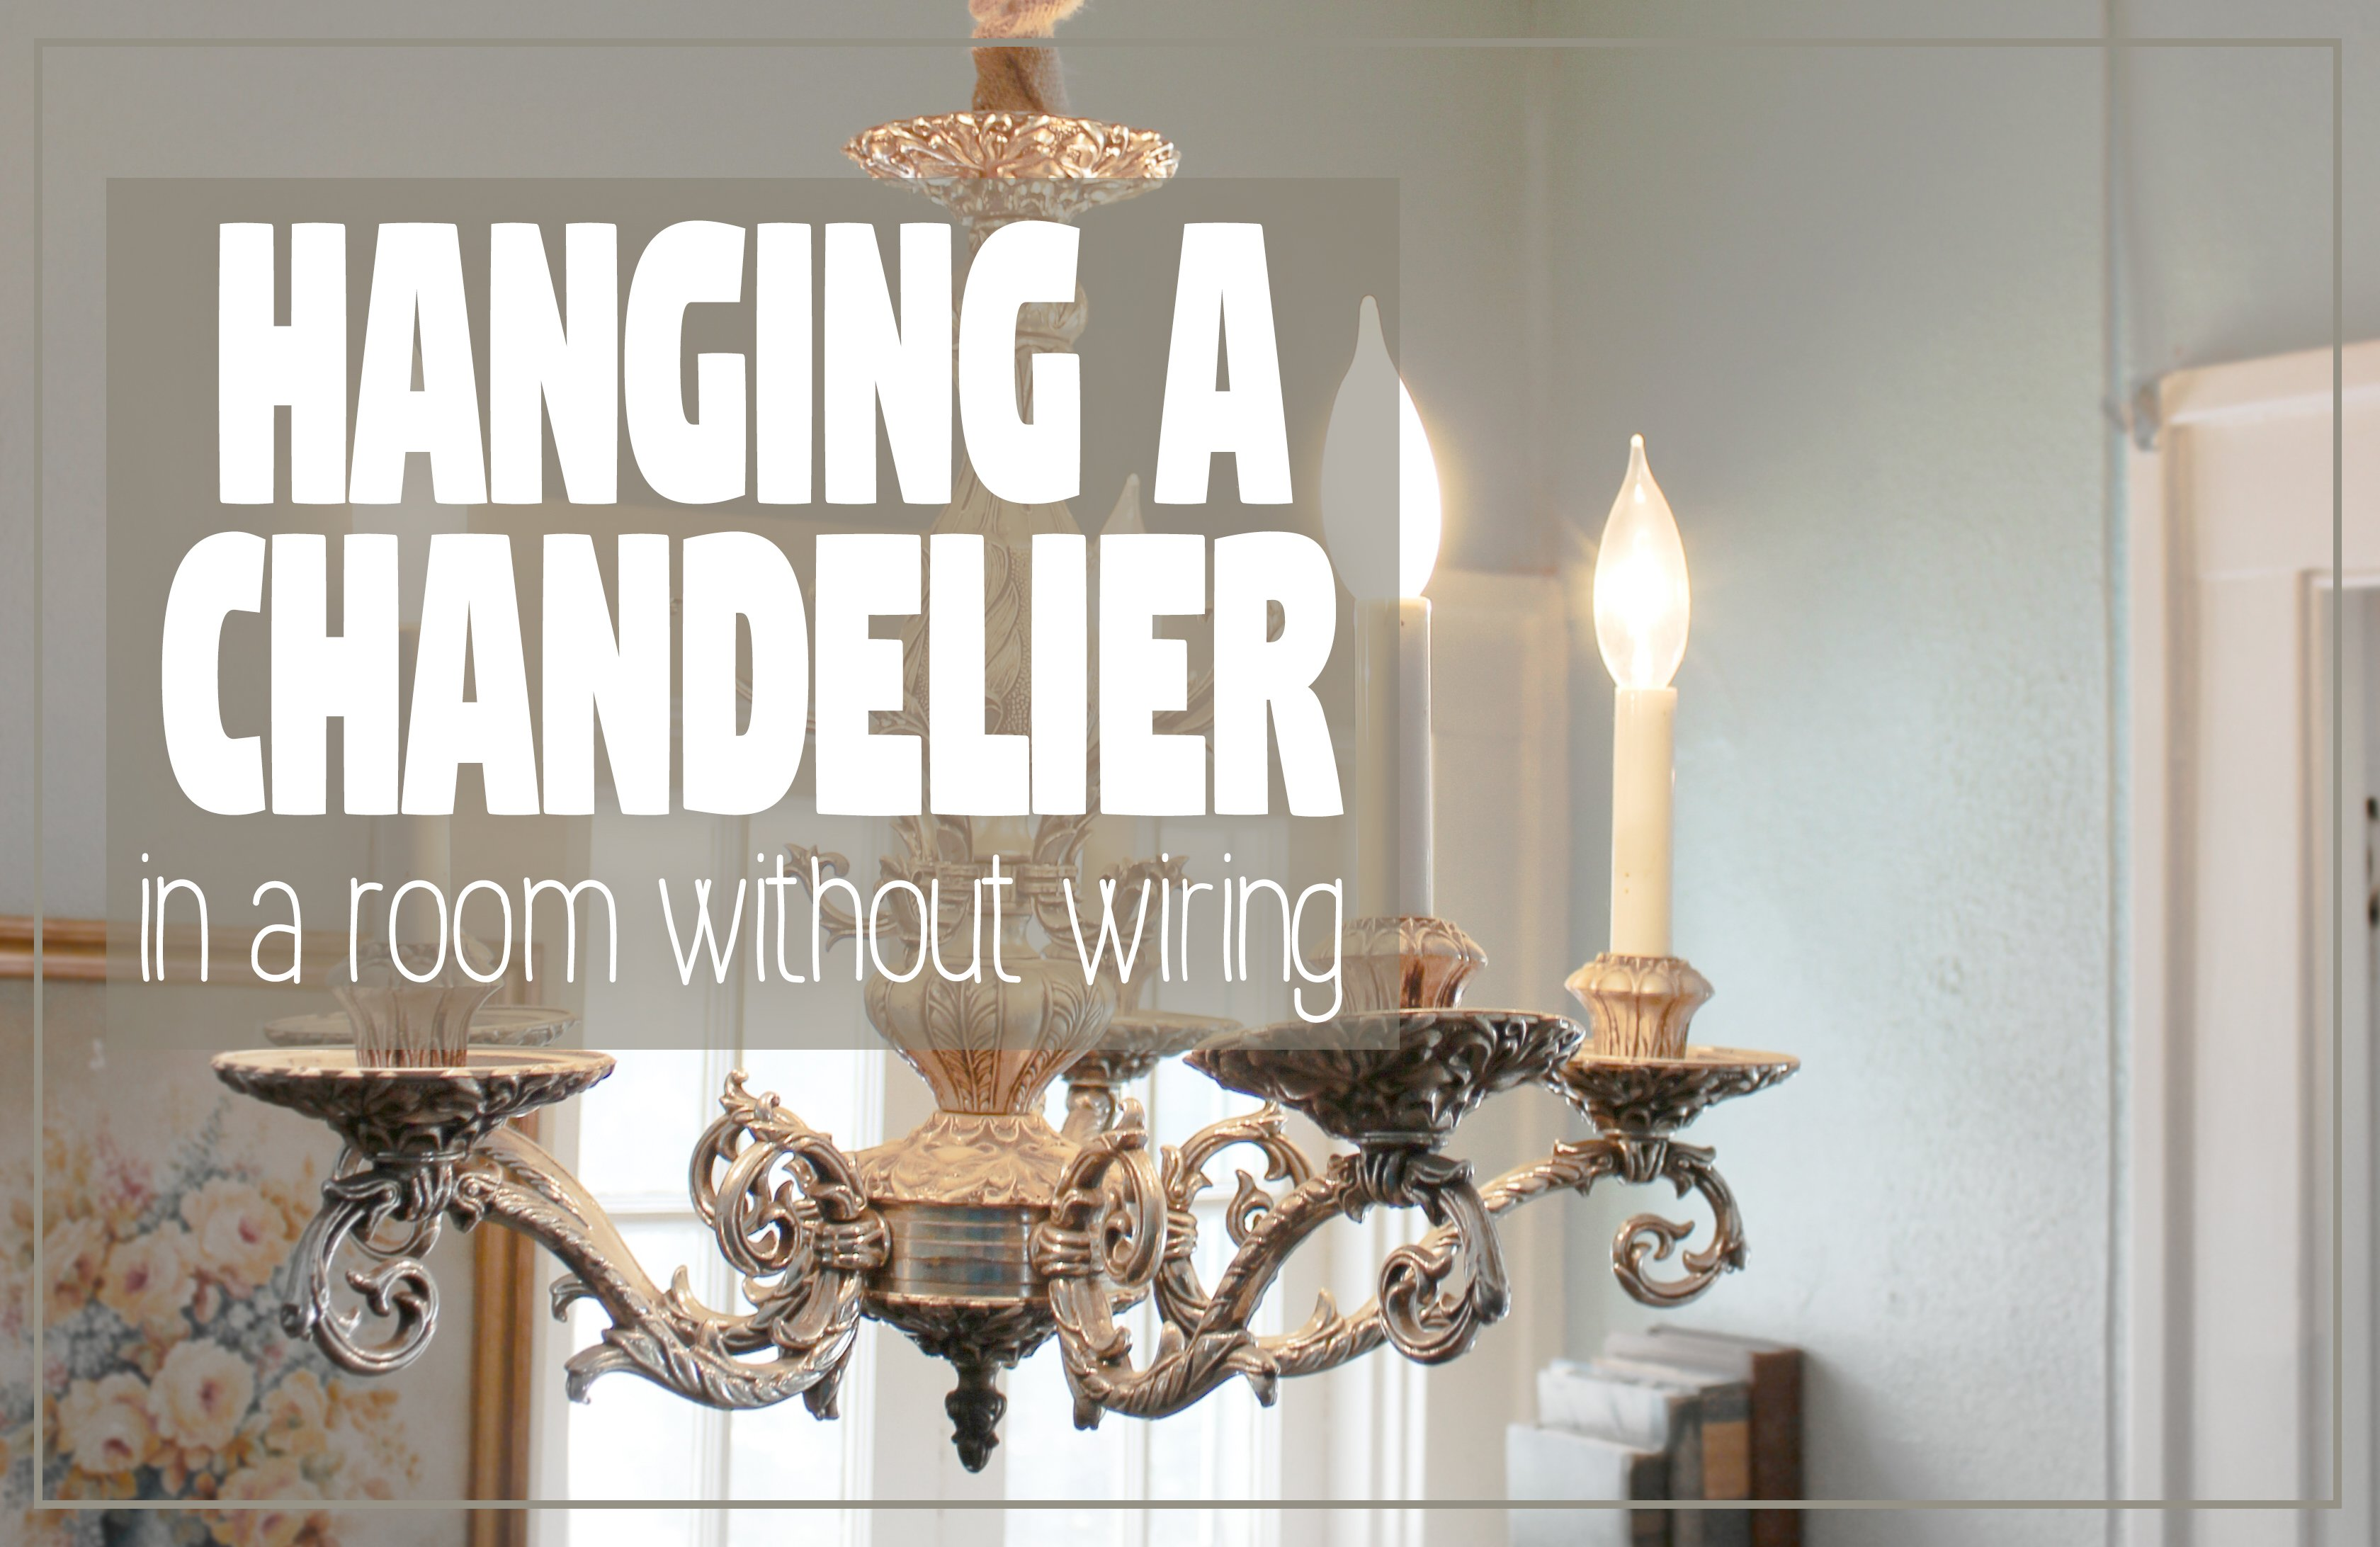 How to hang a chandelier in a room without wiring for an overhead how to hang a chandelier in a room without wiring for an overhead light hawk hill arubaitofo Gallery